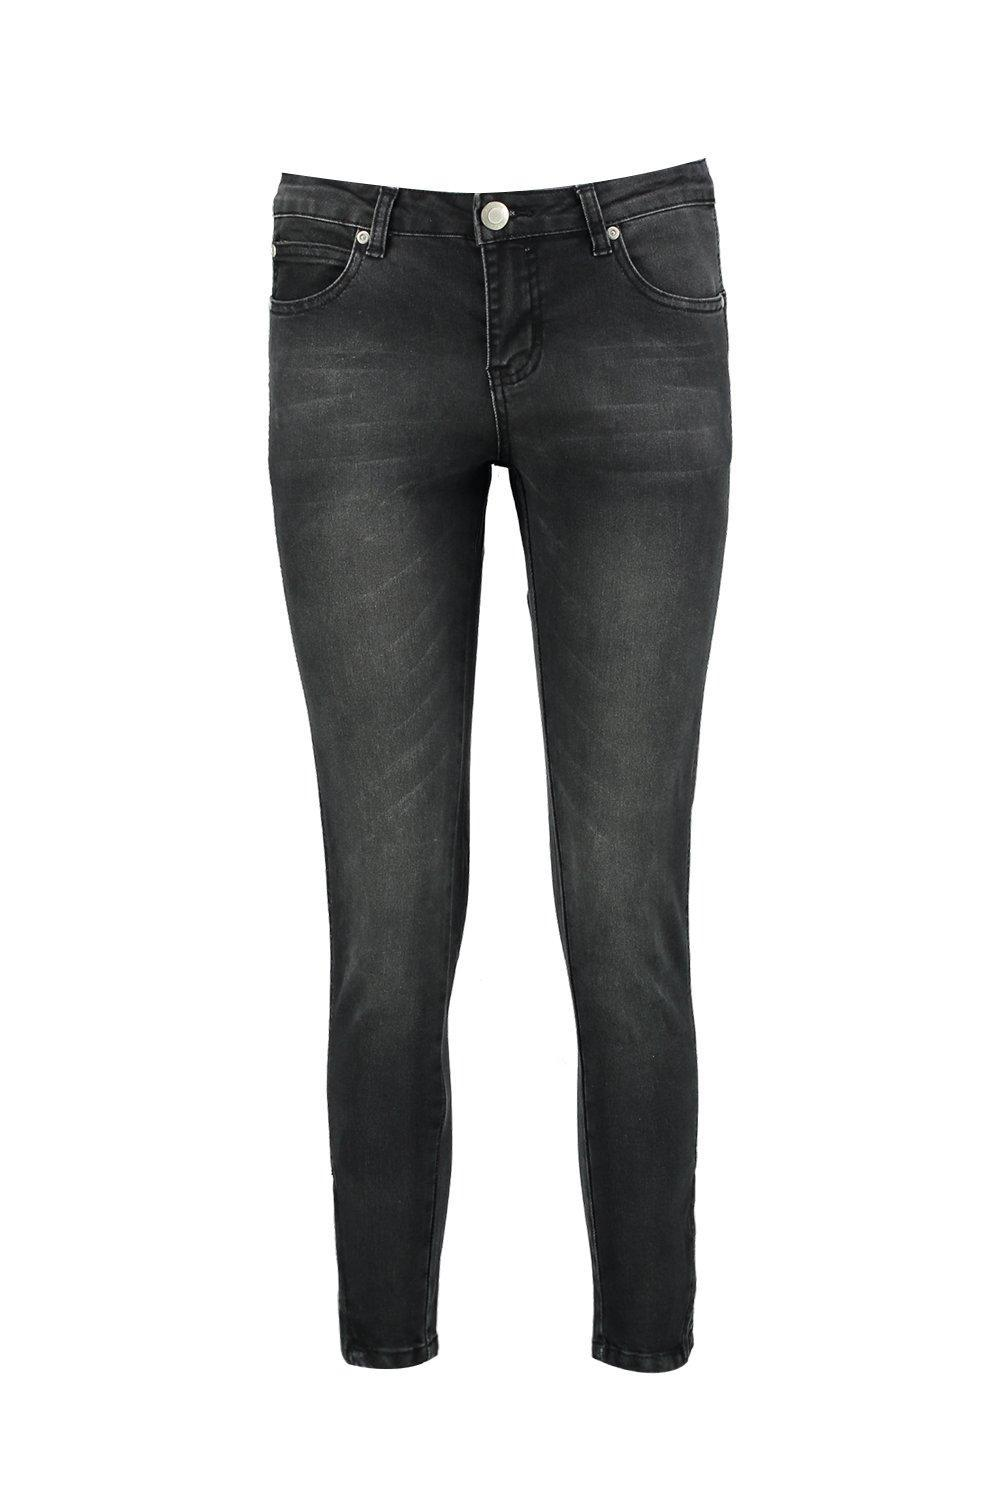 Boohoo Denim Tanya Twisted Zip Seam Mid Rise Skinny Jeans in Black